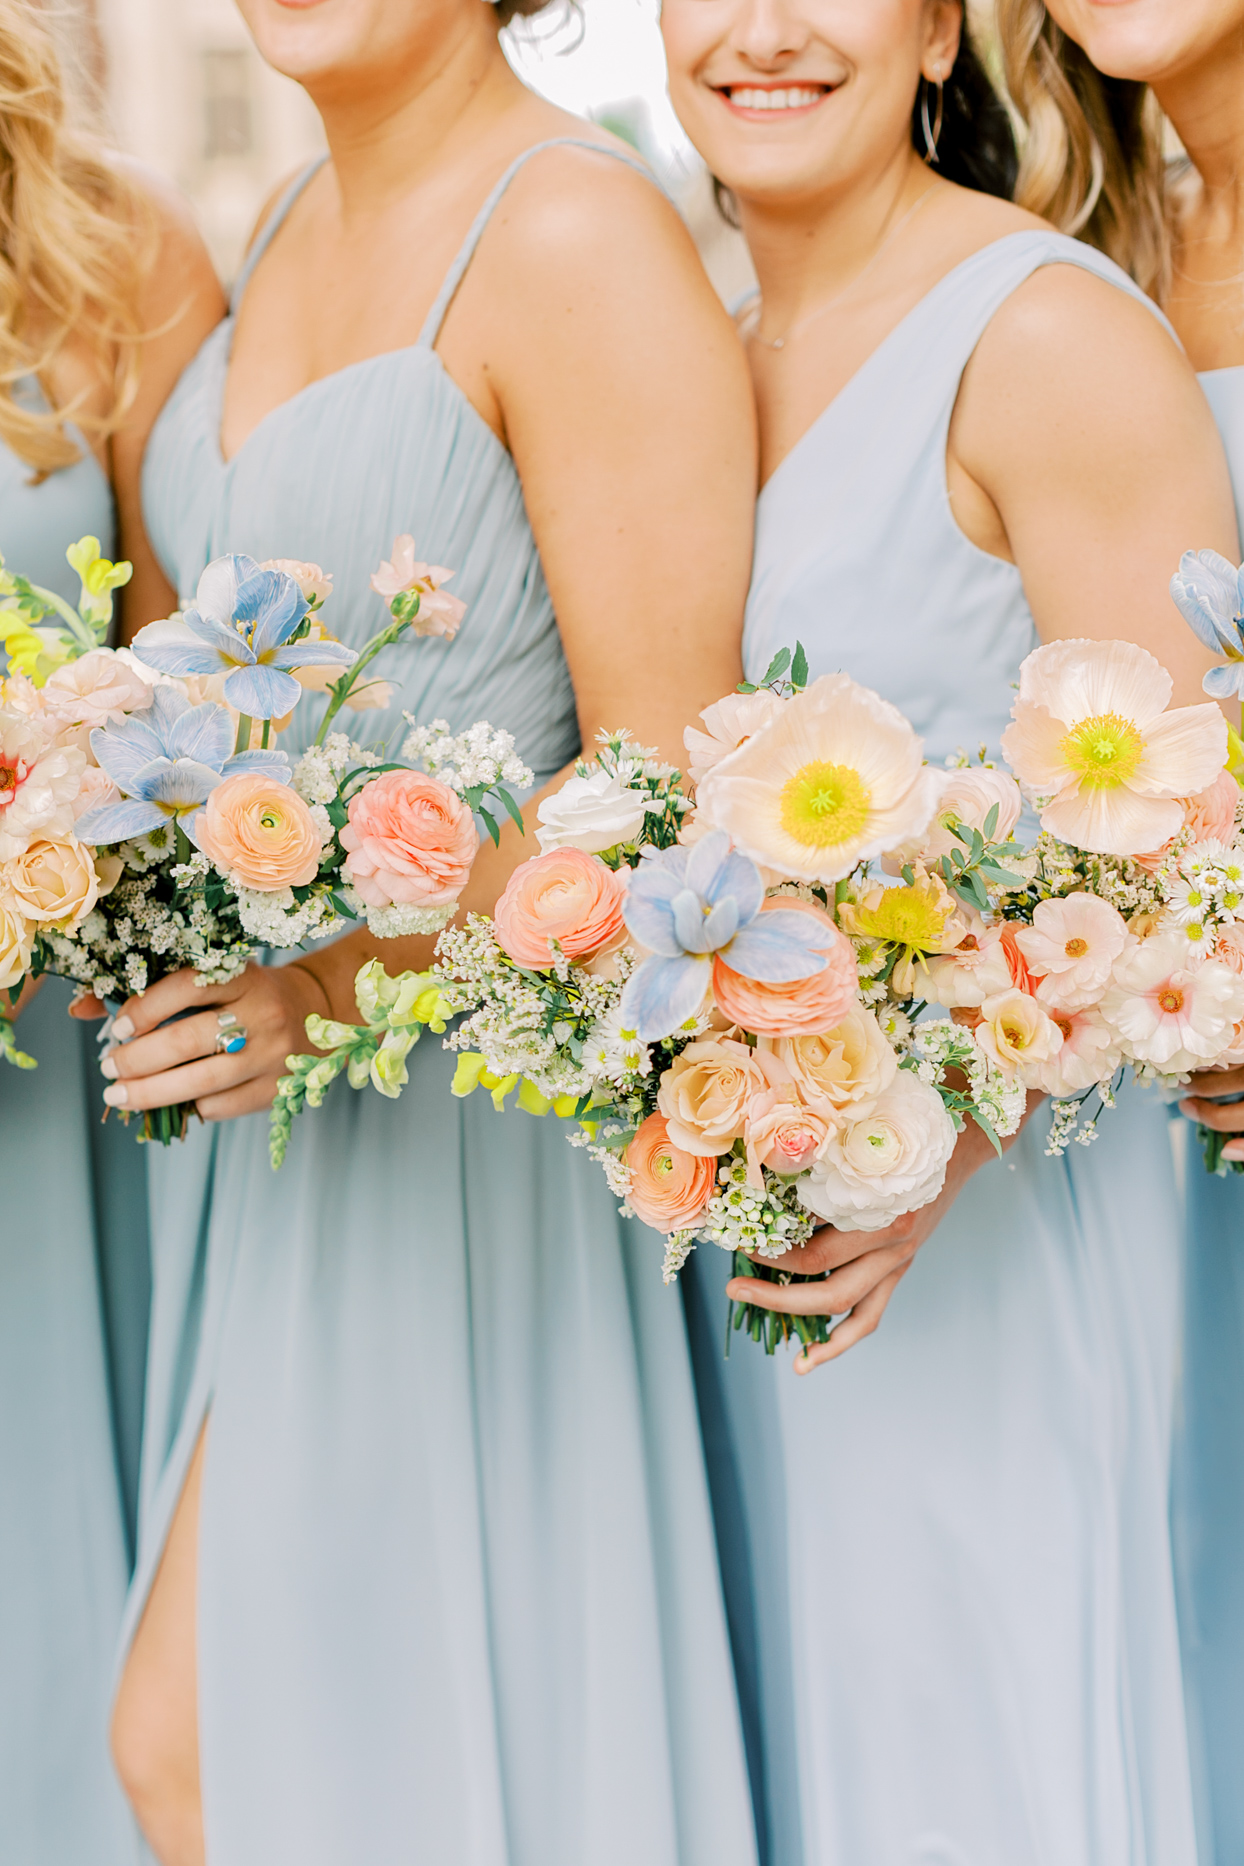 bridesmaids wearing pale blue dresses holding spring hued floral bouquets